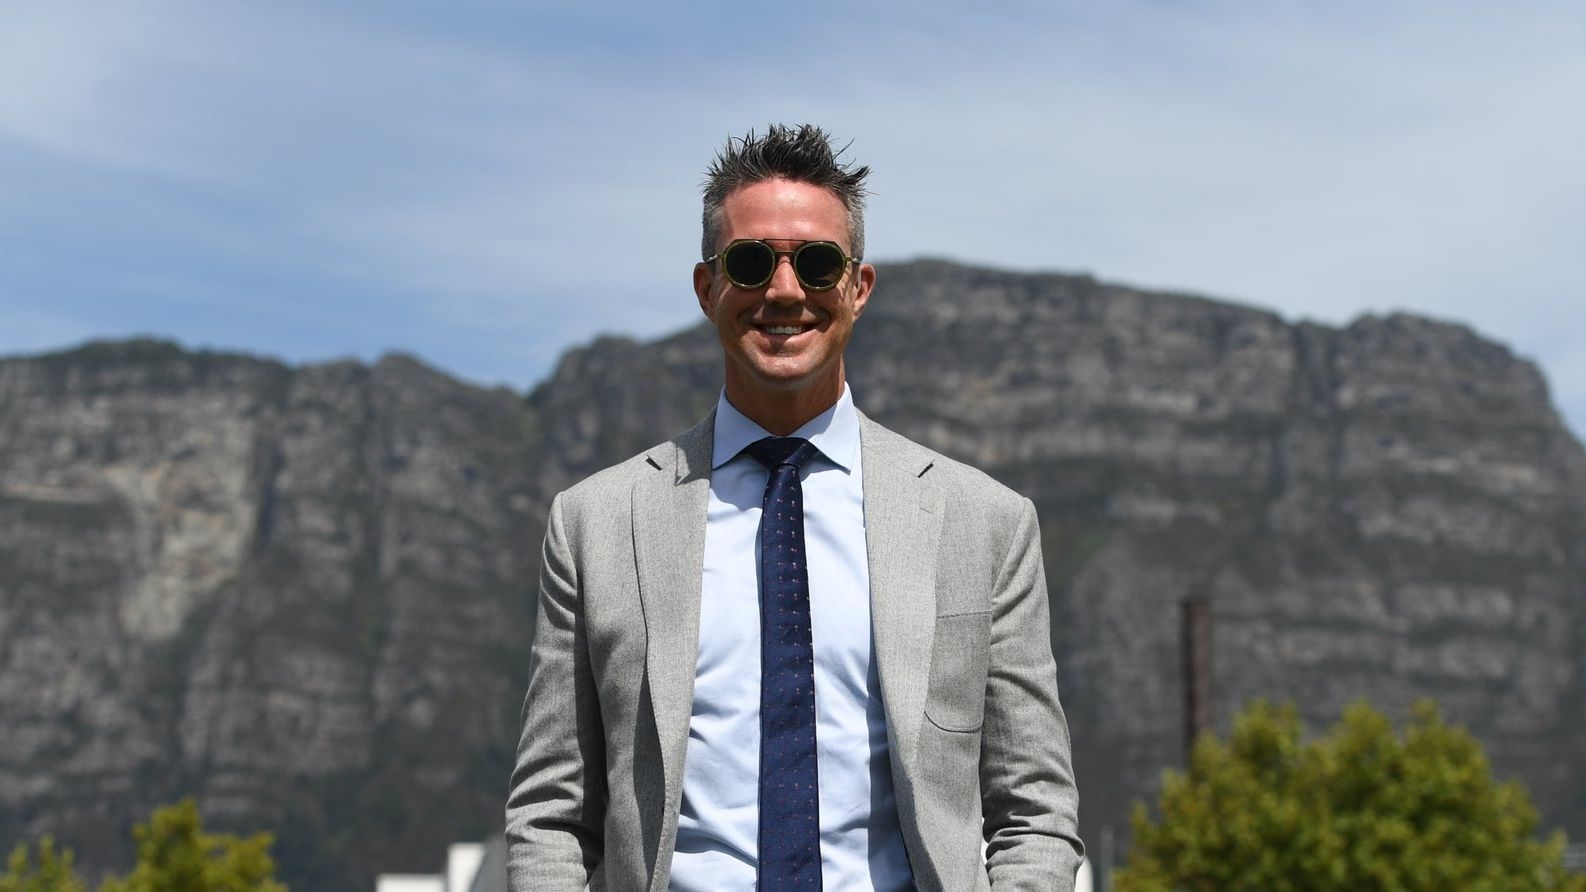 Be Free, Be You: Pietersen Advises Prince Harry, Meghan Markle